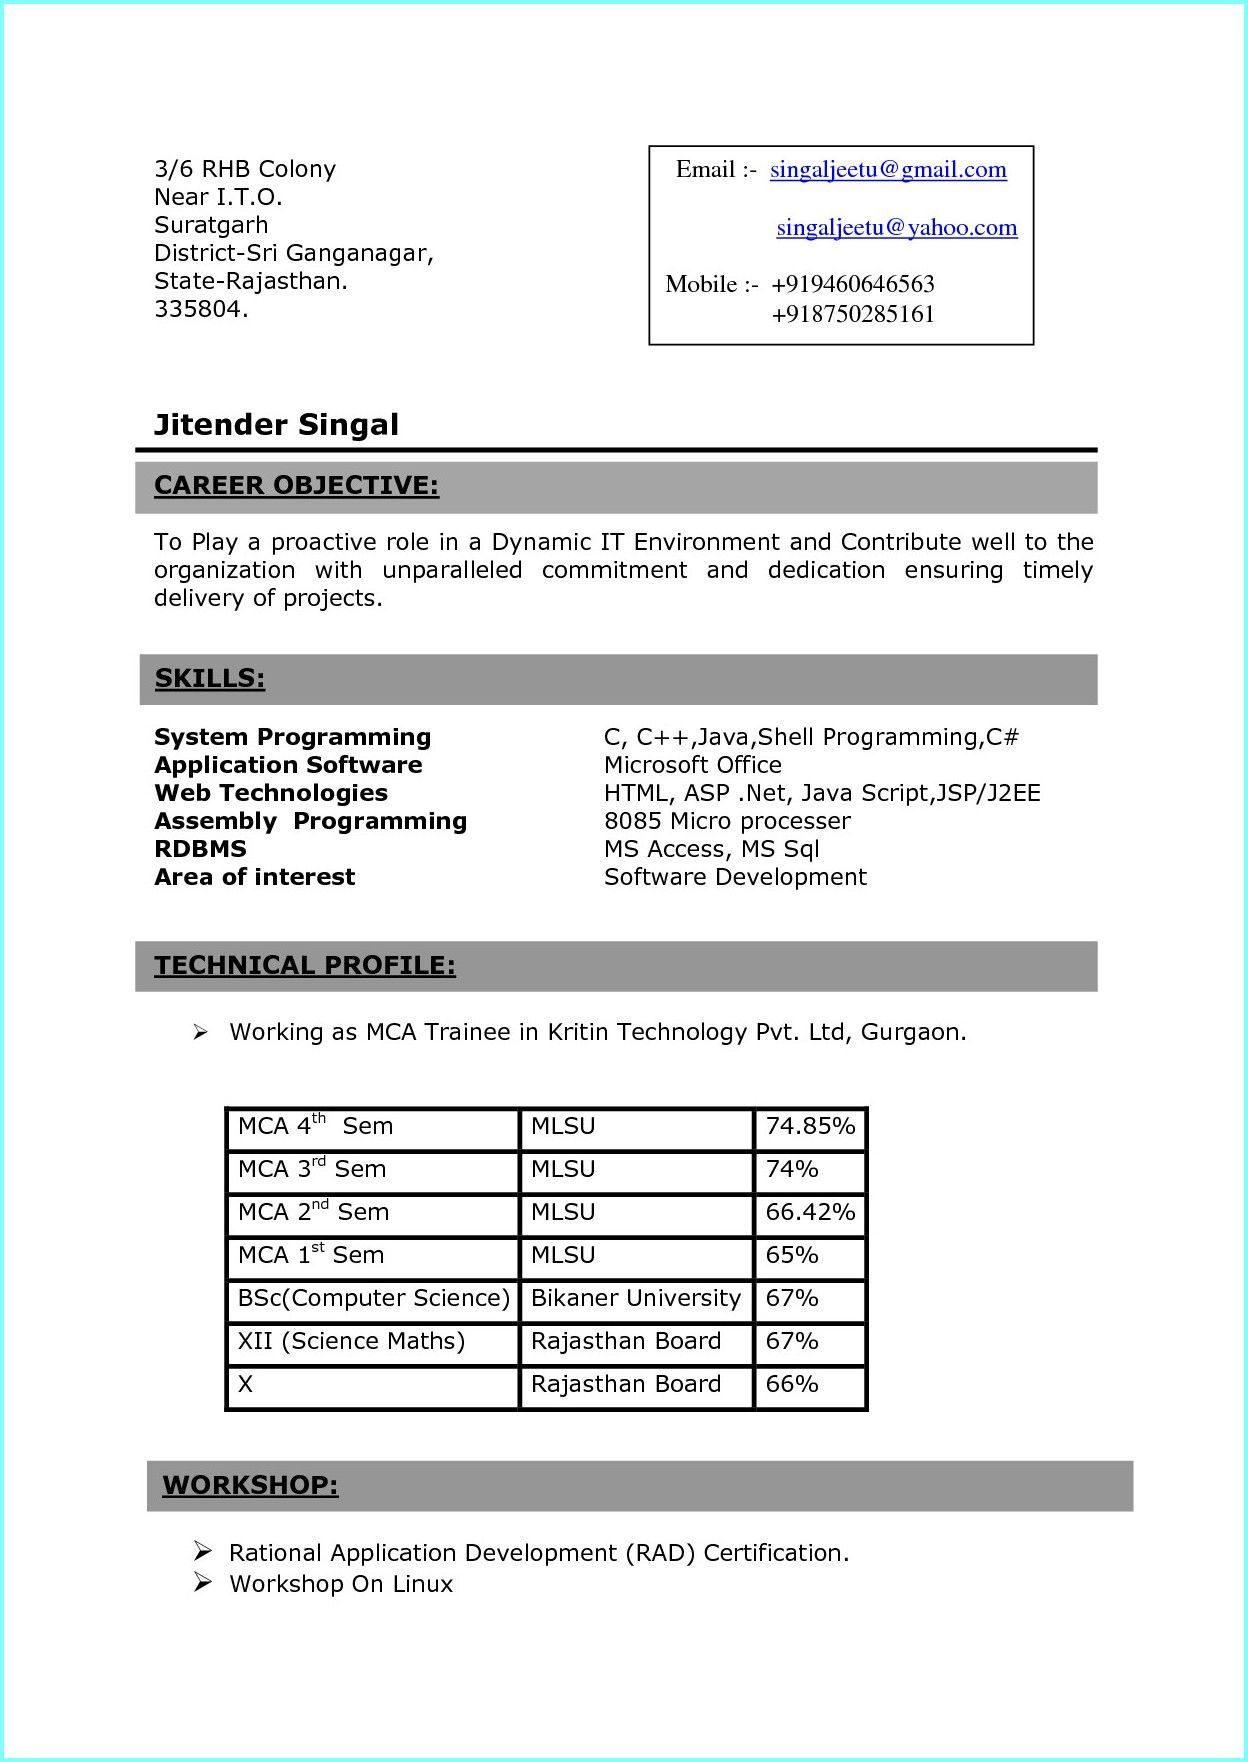 bsc nursing resume format for freshers examples in word layout of product trainer Resume Layout Of Resume For Freshers